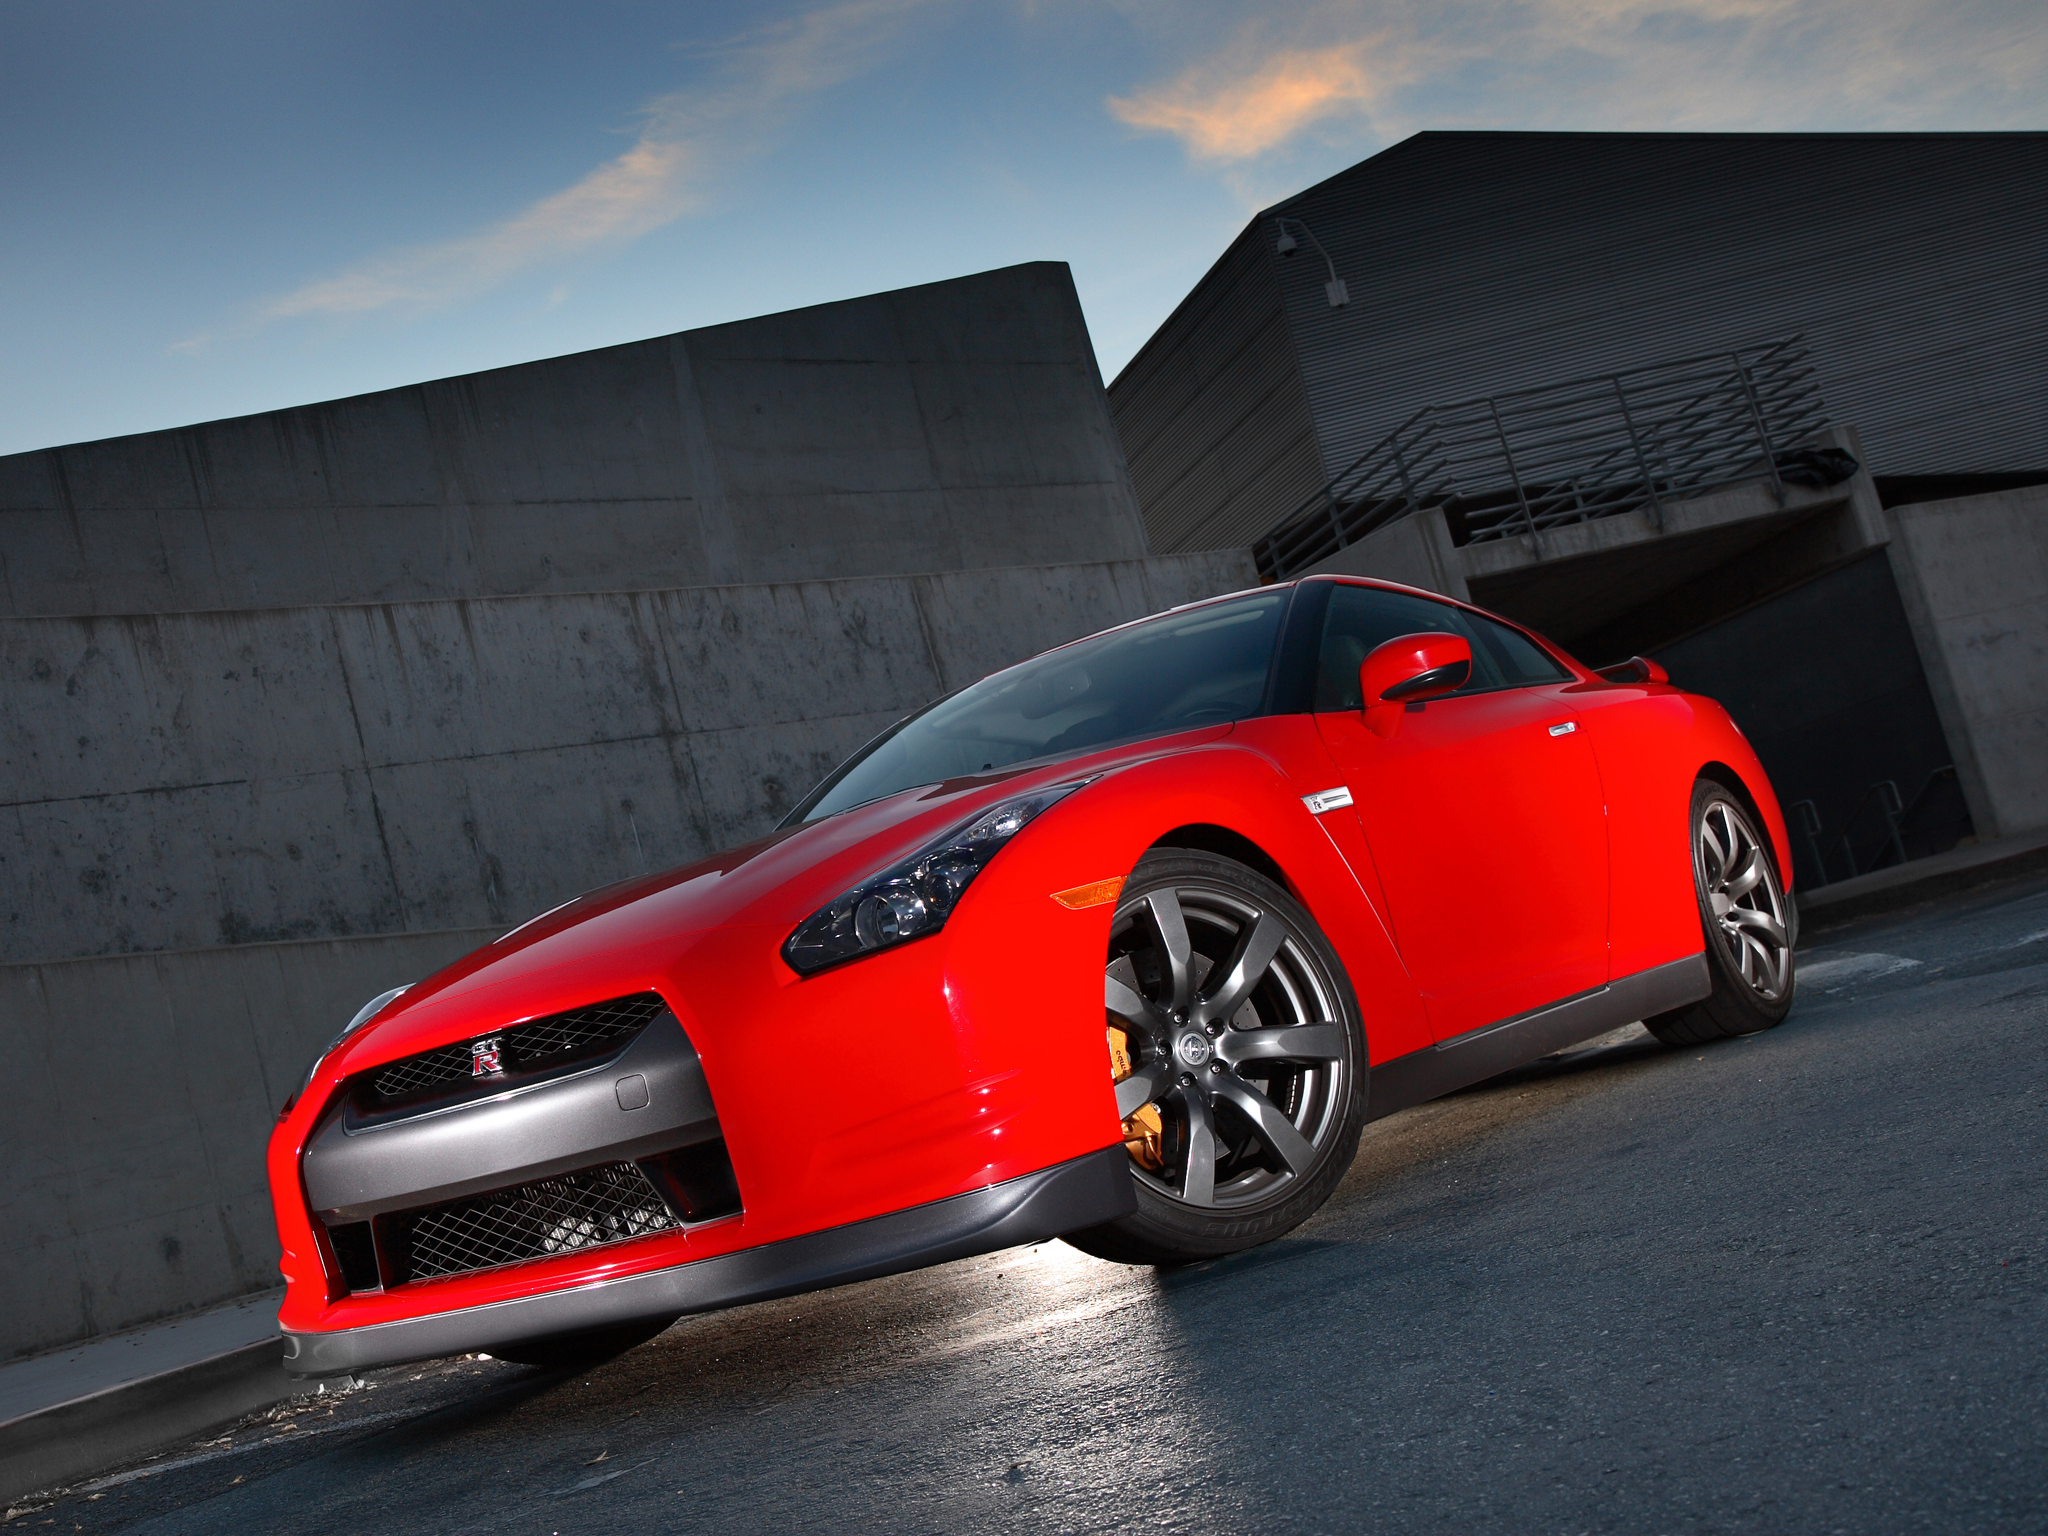 Photo Gallery: 2009 Nissan GT-R. July 17, 2008 | The GT-R is back!